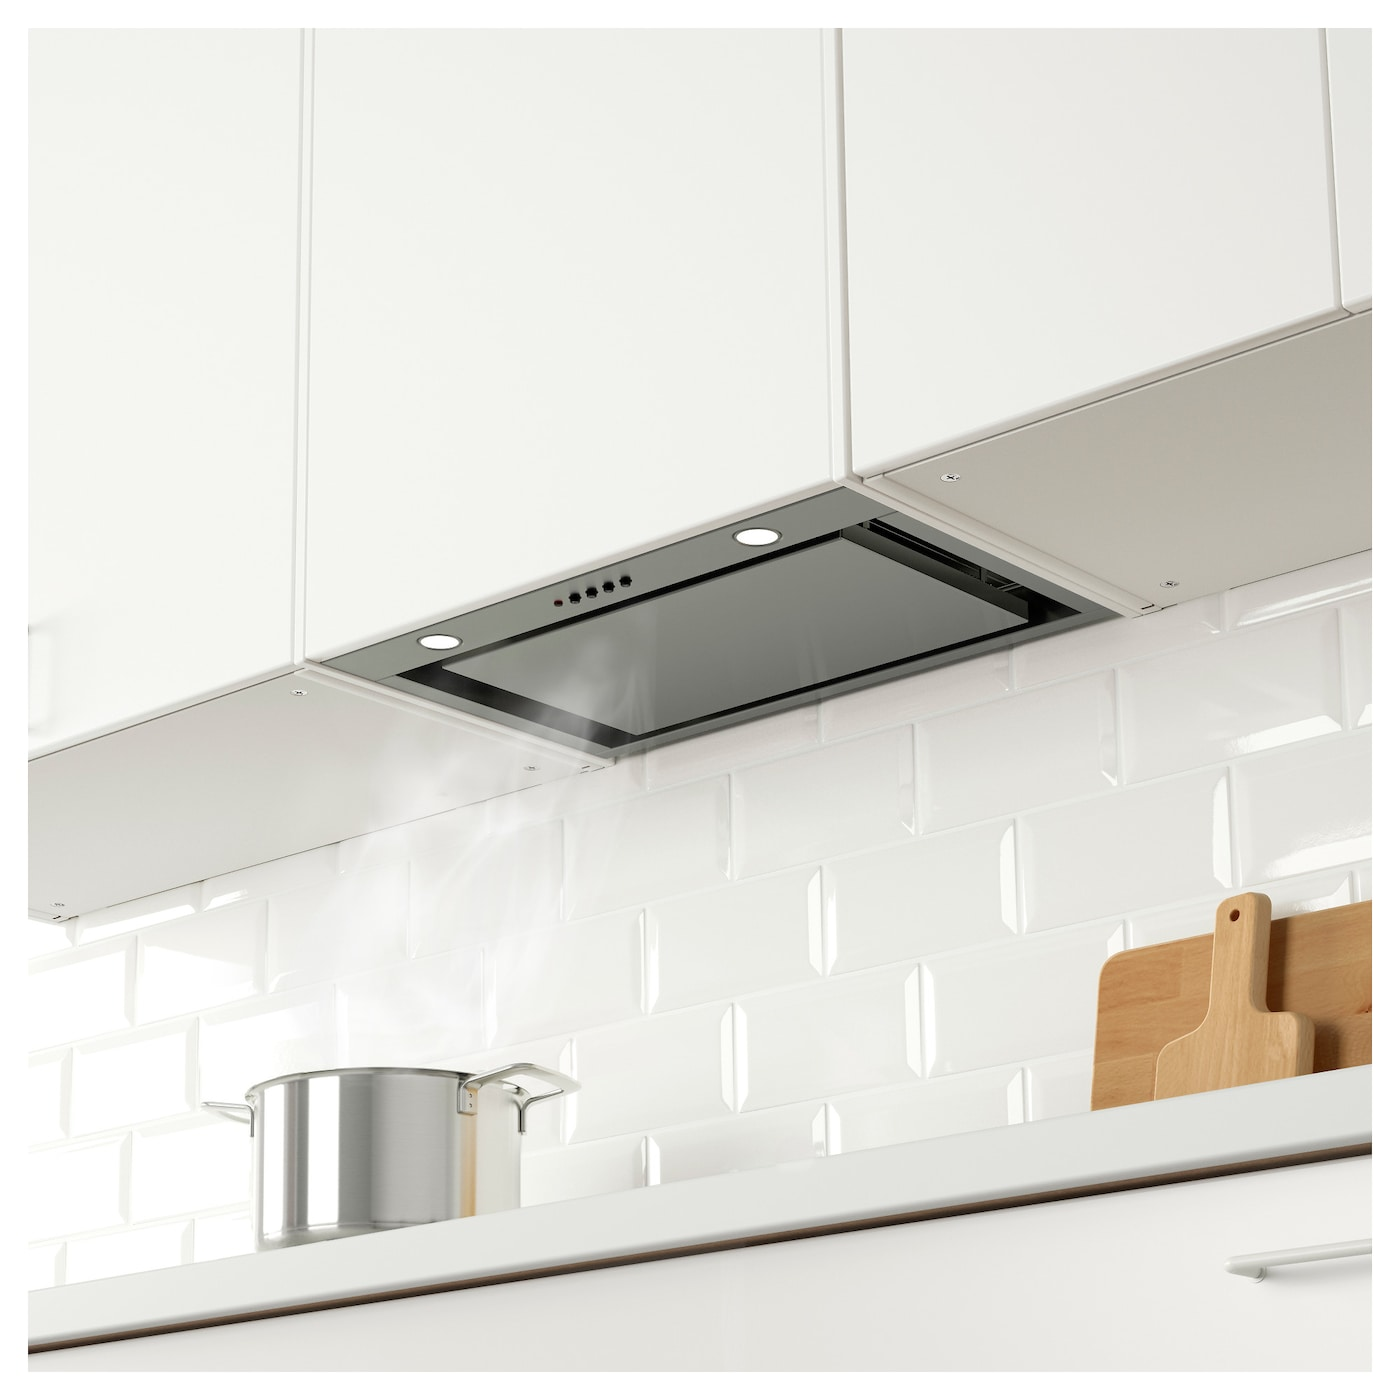 Good IKEA UNDERVERK Built In Extractor Hood Easy To Install In A Wall Cabinet.